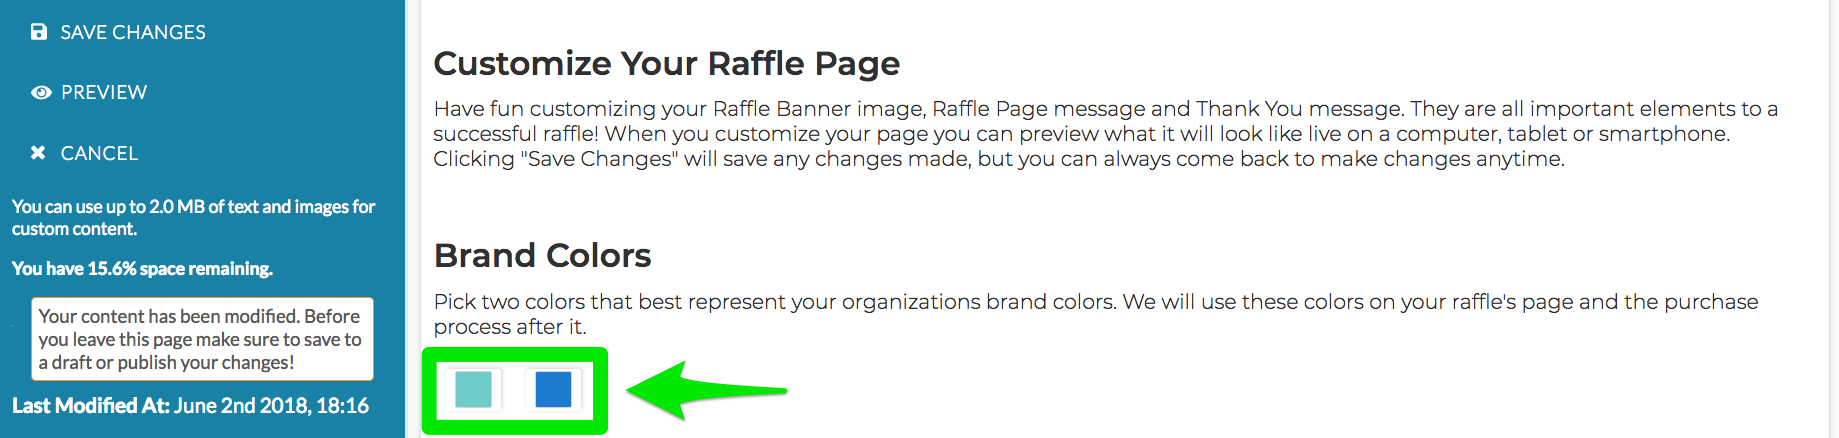 Design_Your_Raffle_Page-3.png